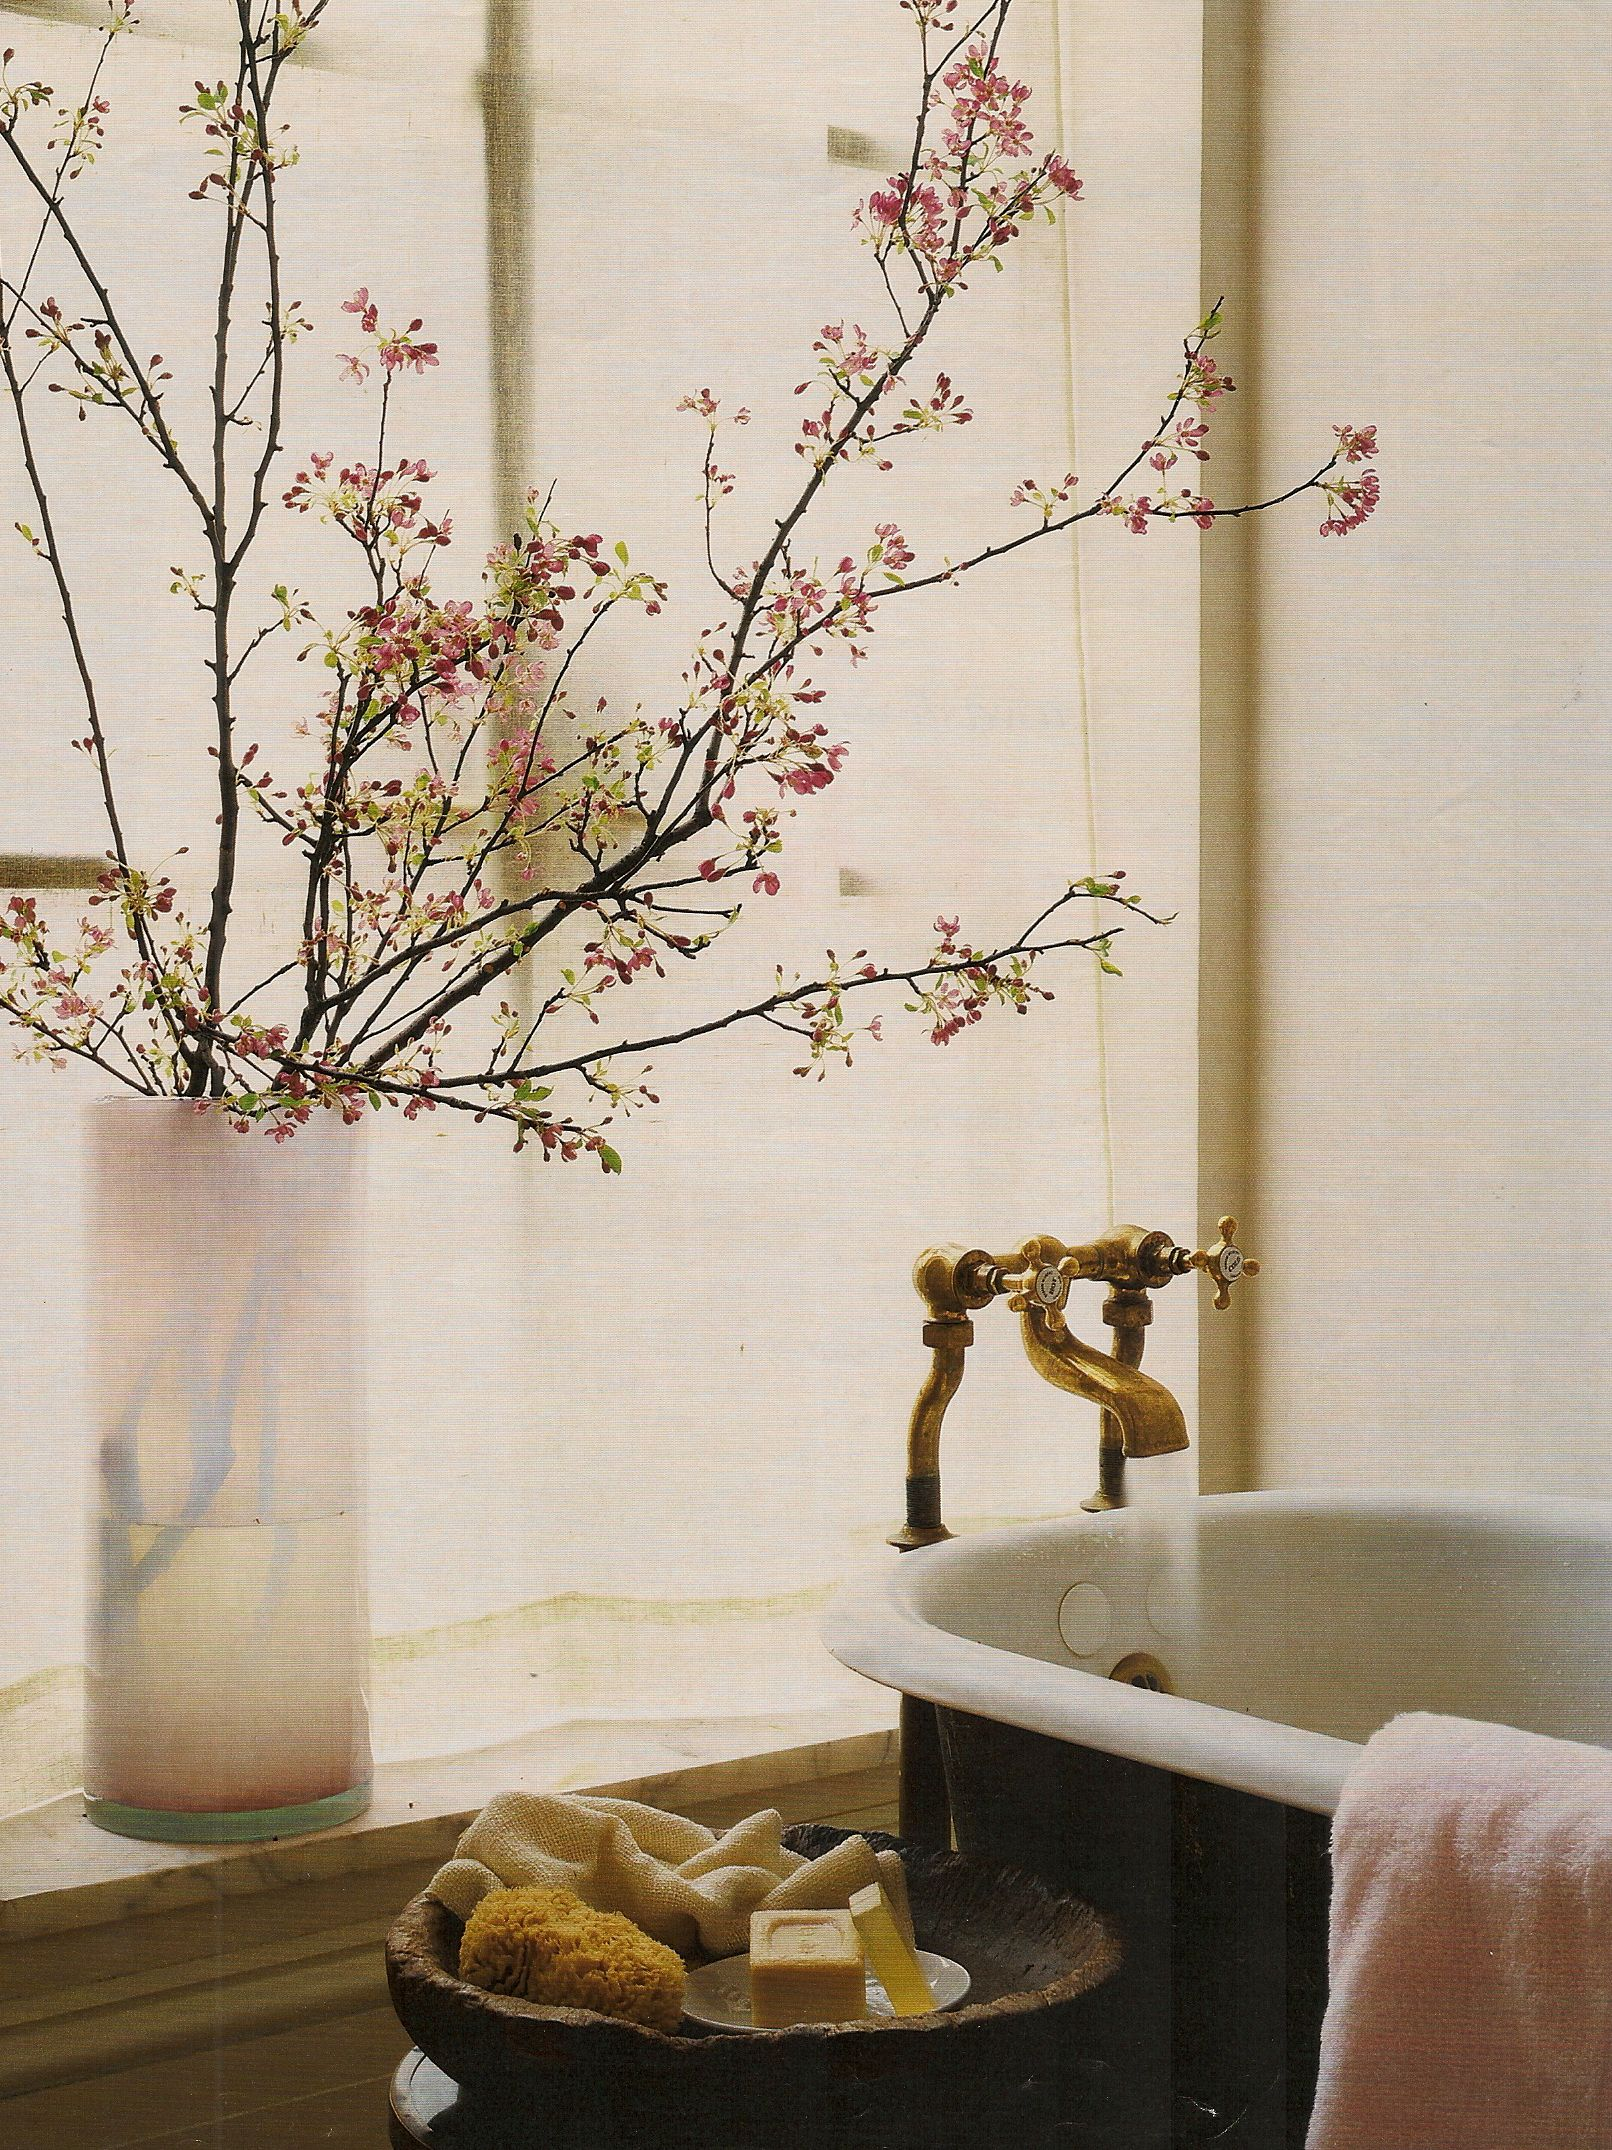 MSL: Bathtub with blossoming branches.  Me there now, please.